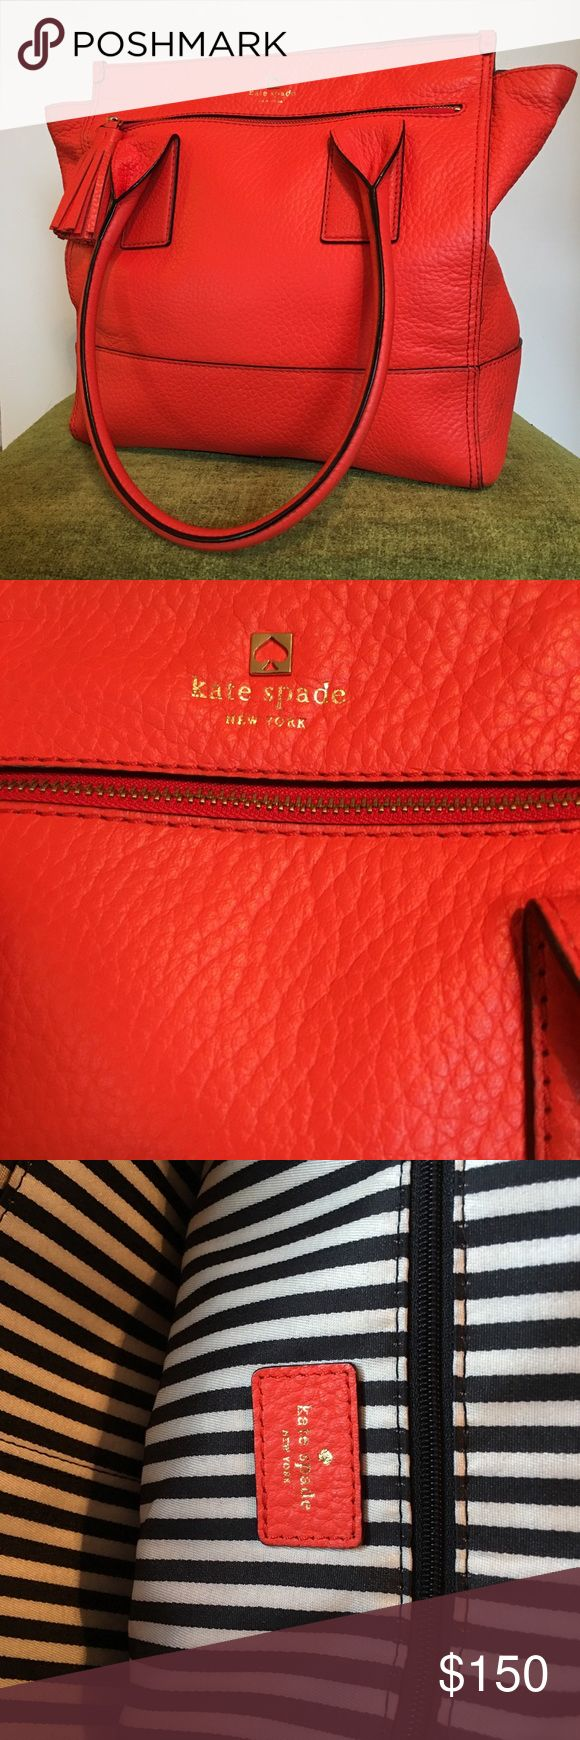 Large Kate Spade Handbag Clean interior with side zipper on both inside and front side. kate spade Bags Shoulder Bags